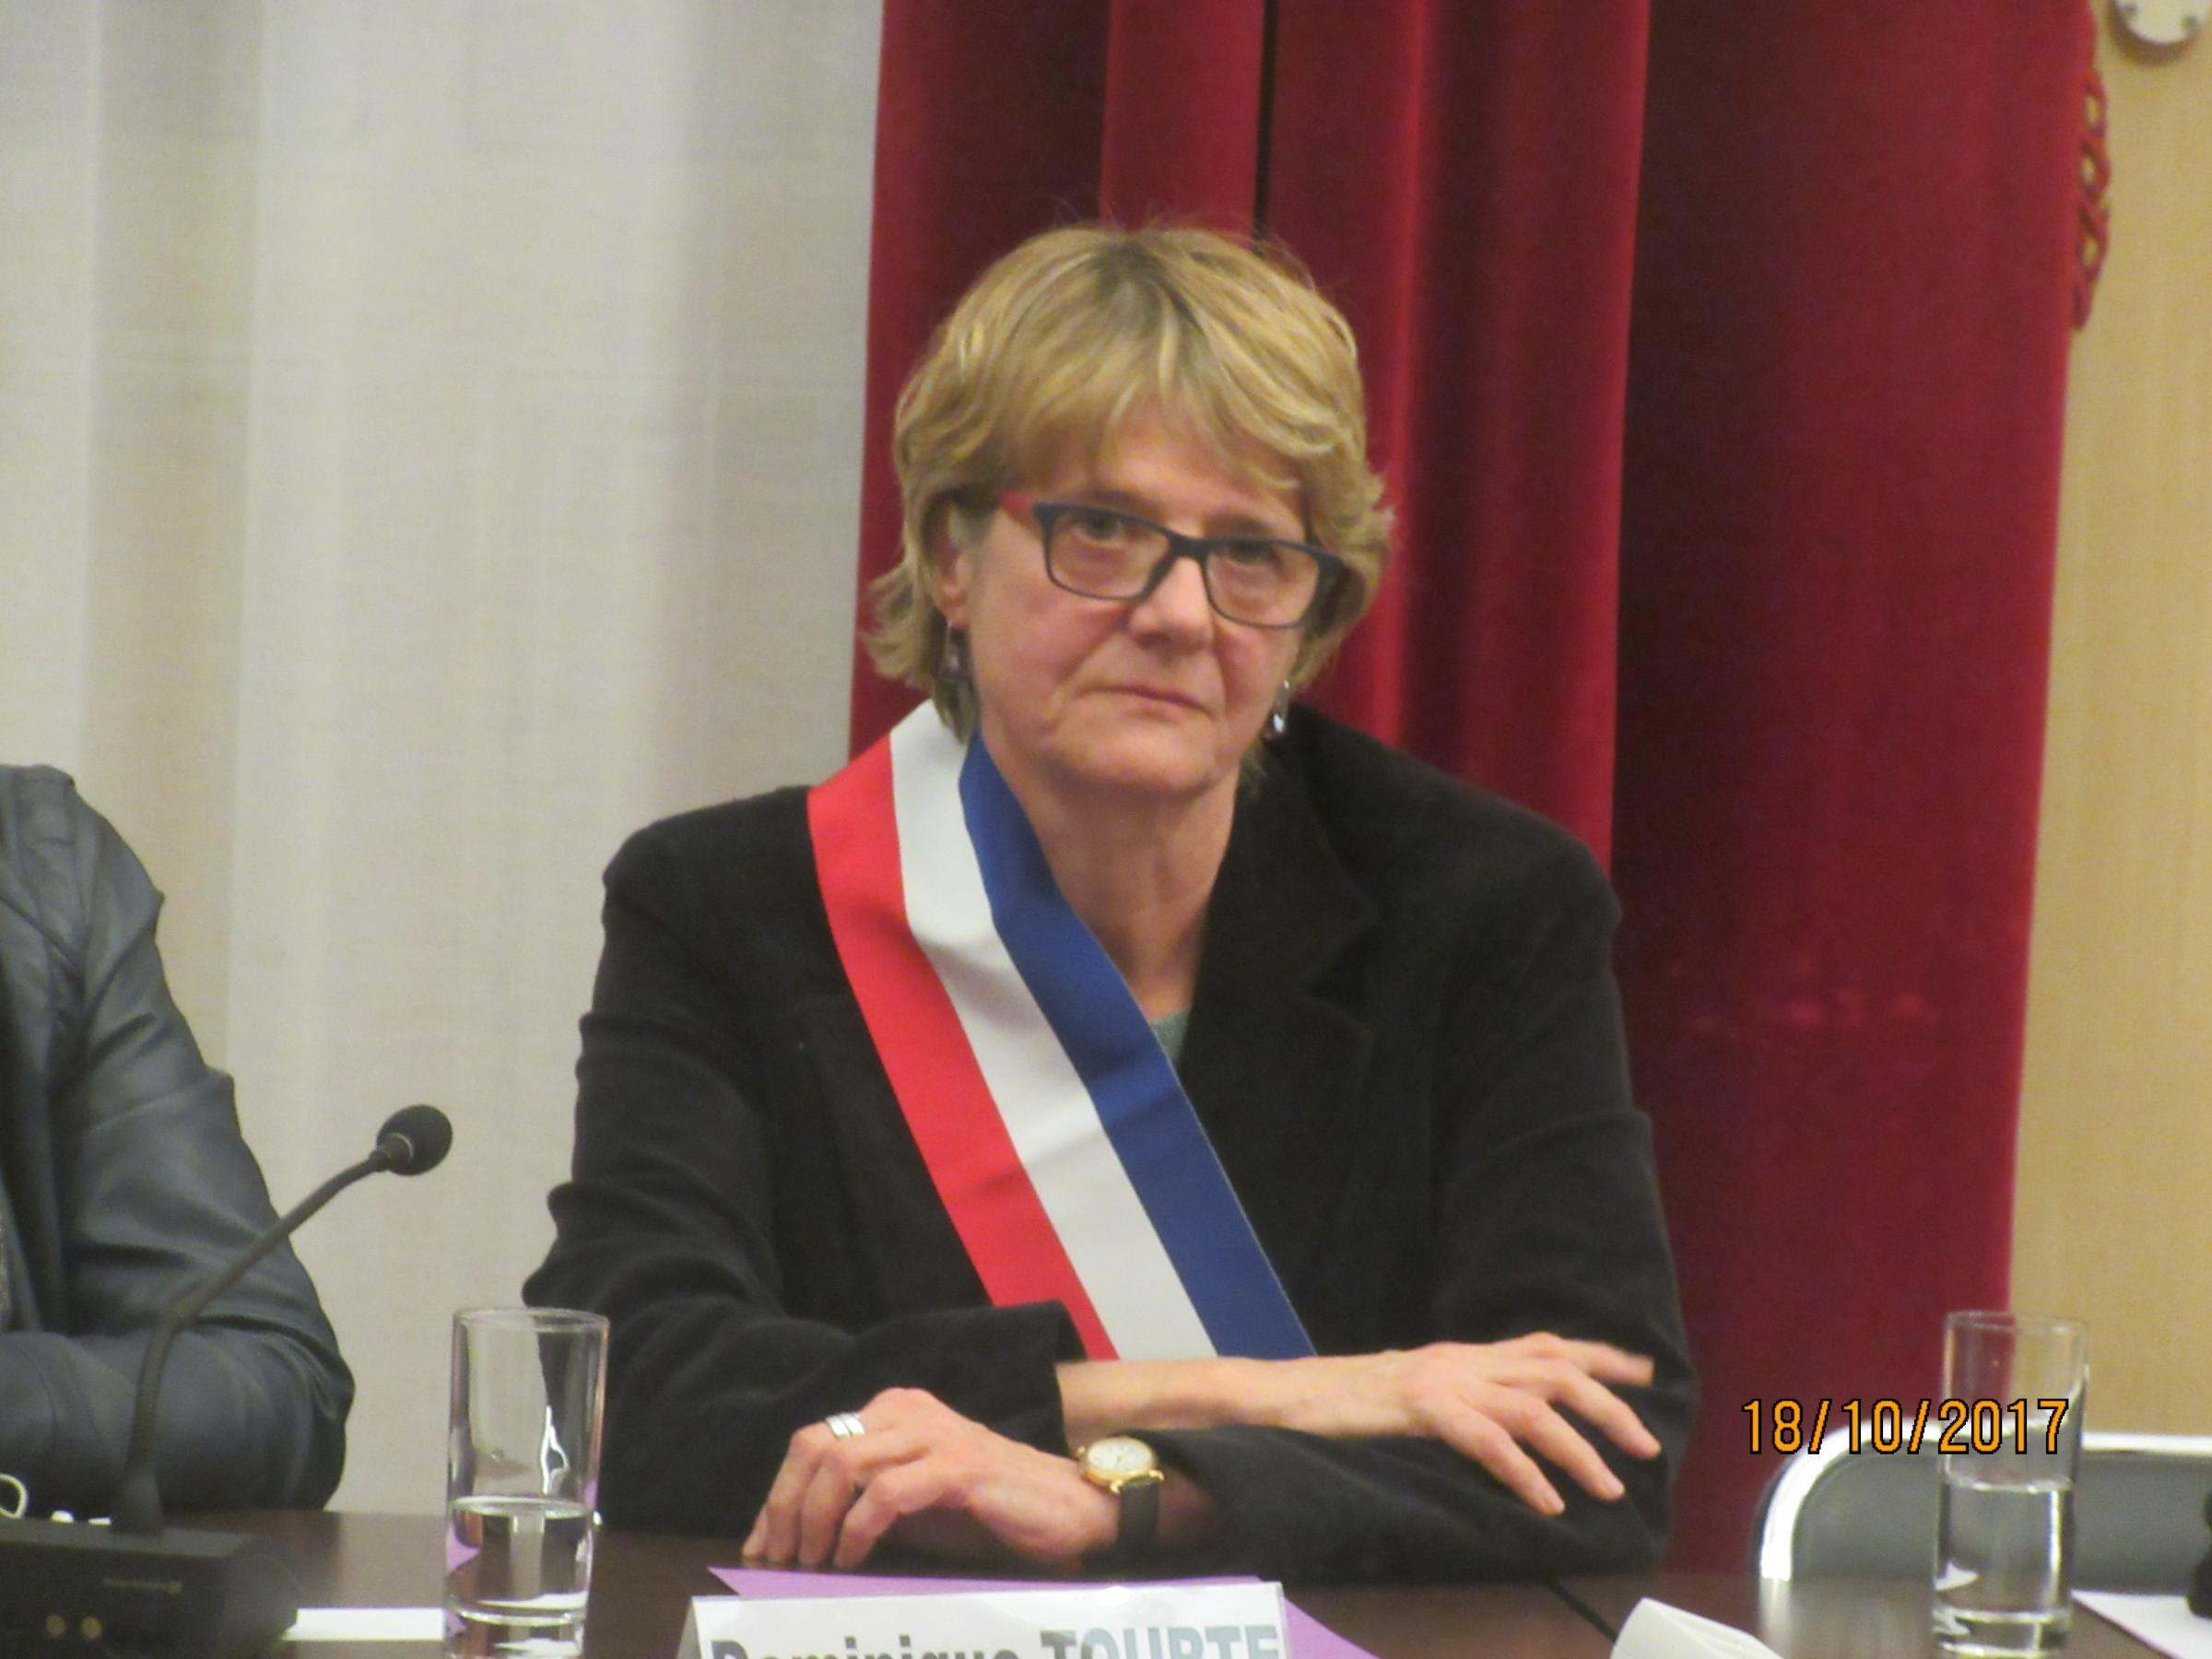 Dominique Tourte élue adjointe à la Maire. 18 octobre 2017 img_5544.jpg